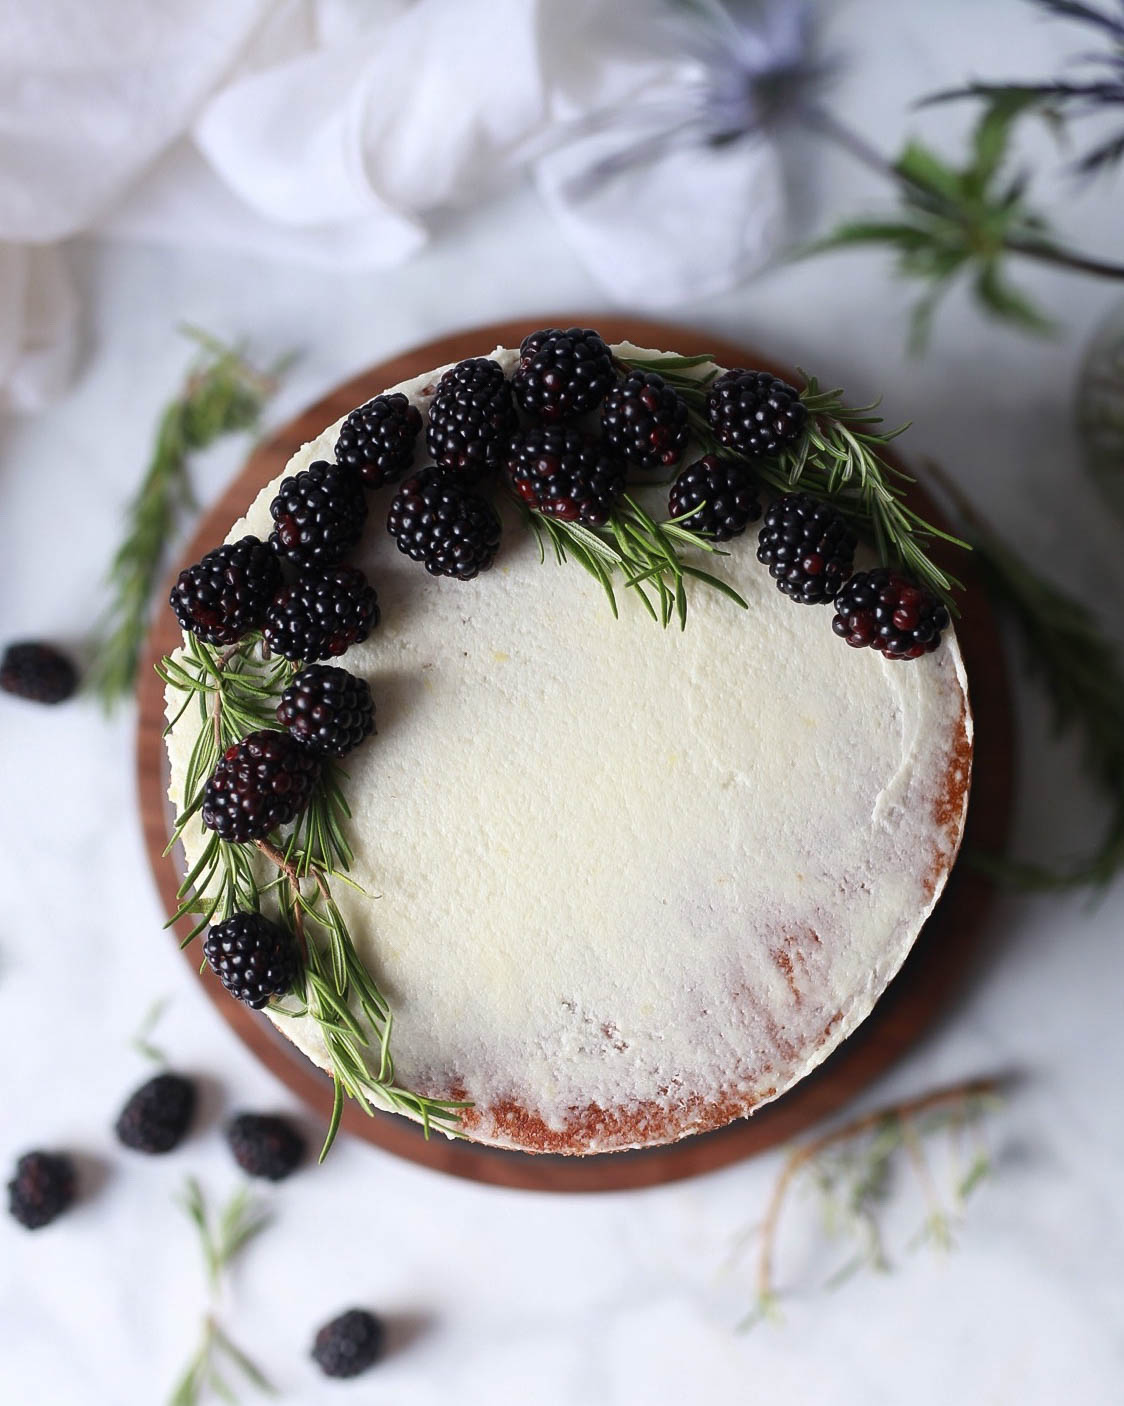 Lemon Rosemary Olive Oil Cake with Blackberry Curd and Mascarpone Buttercream